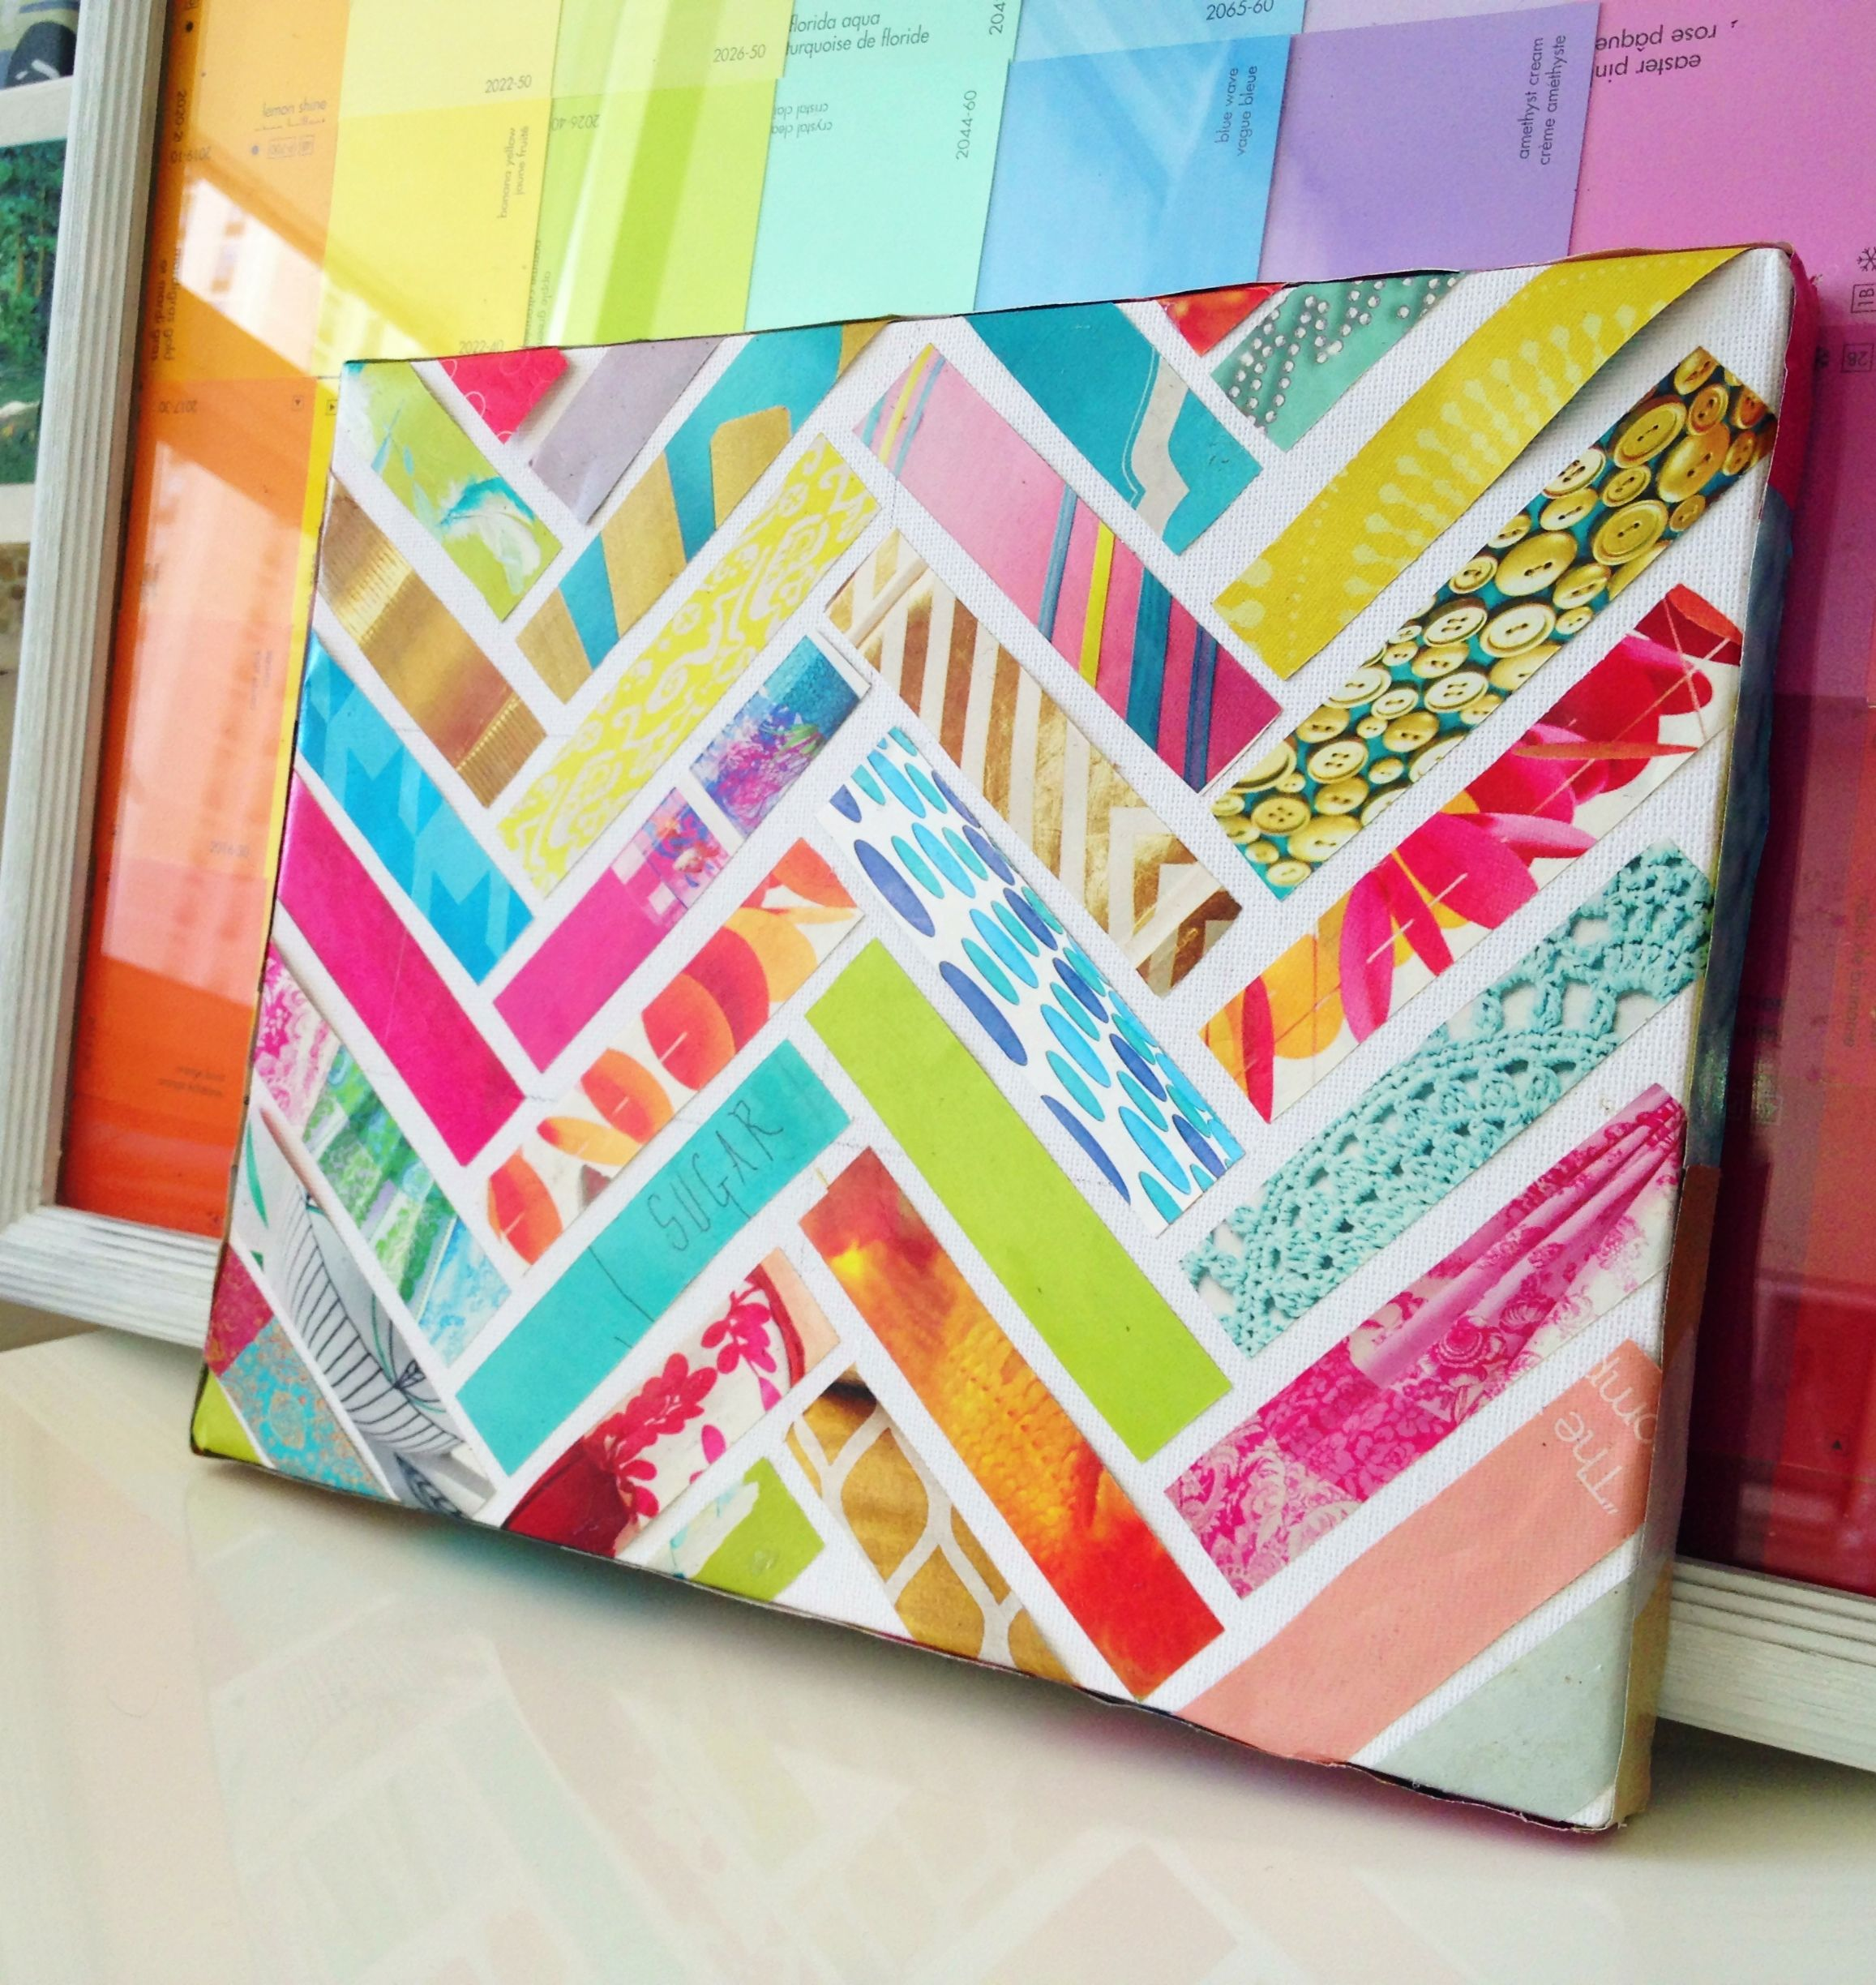 60 Easy Wall Art Ideas that Even Kids Can Make | Small art ...